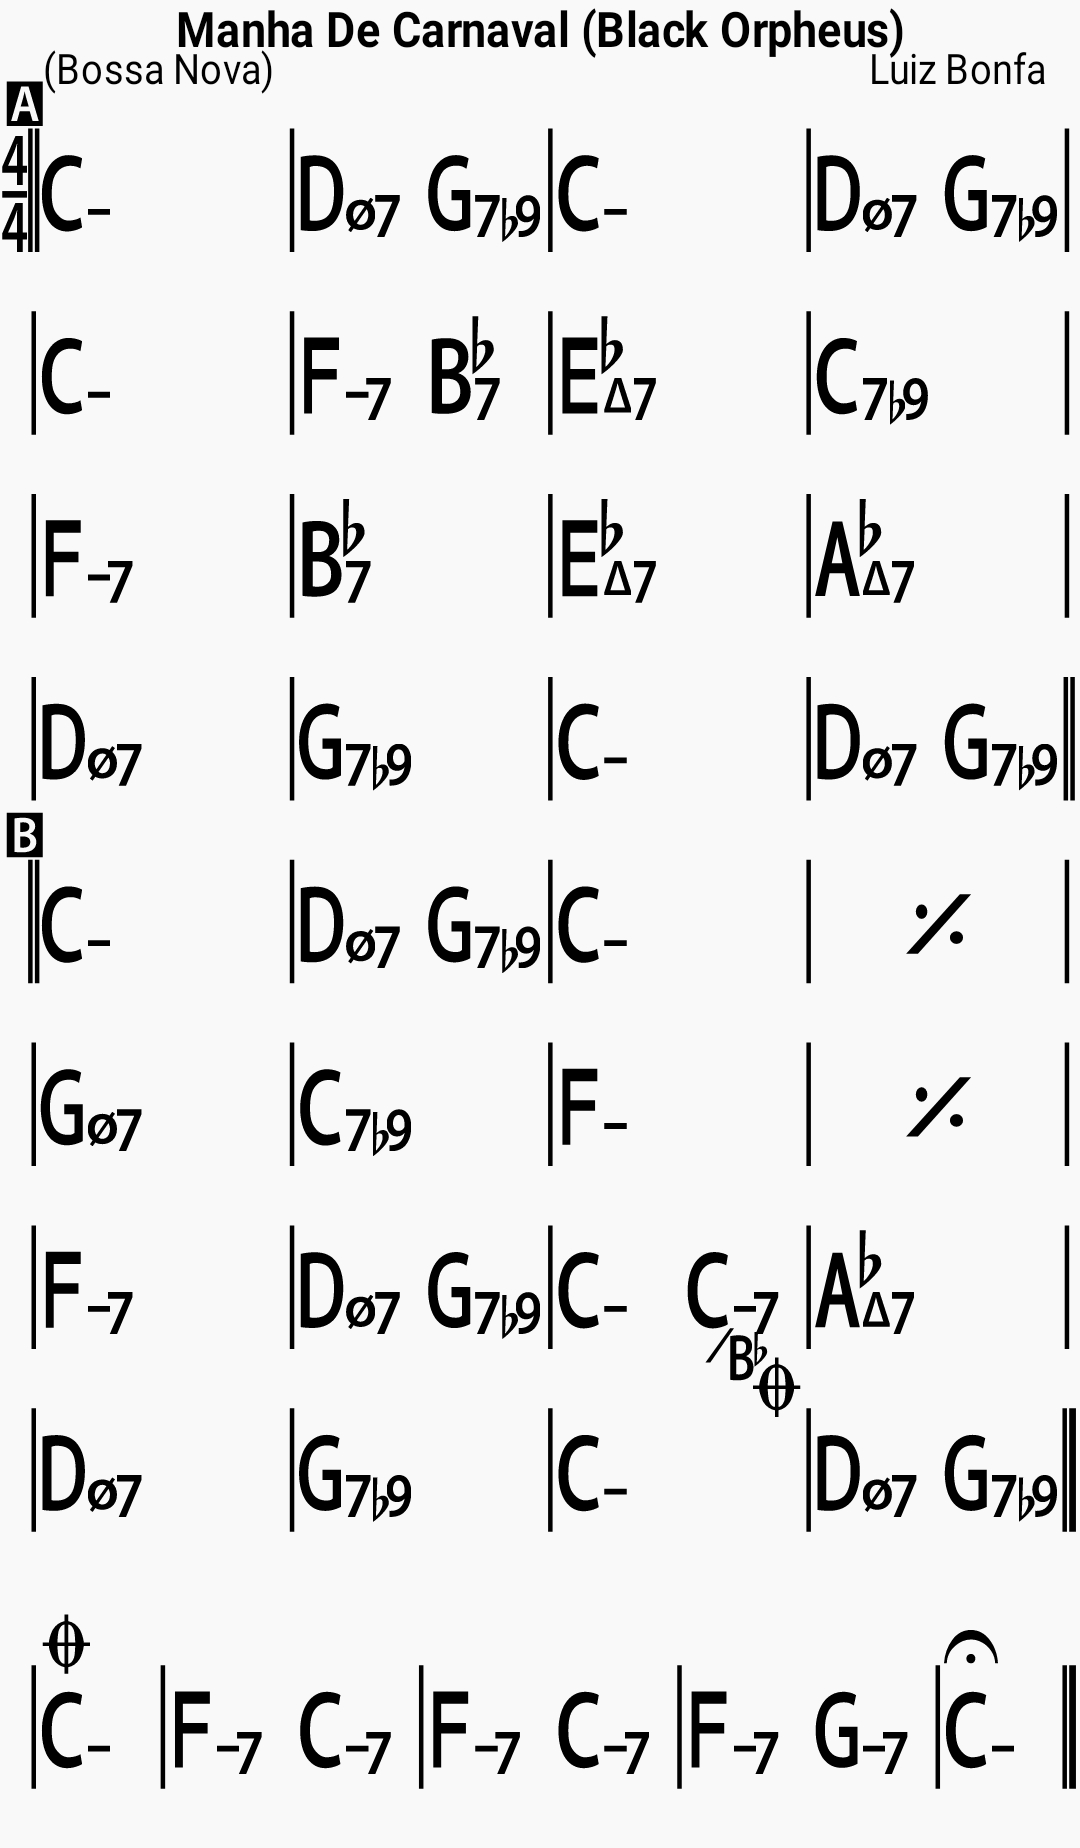 Chord chart for the jazz standard Black Orpheus